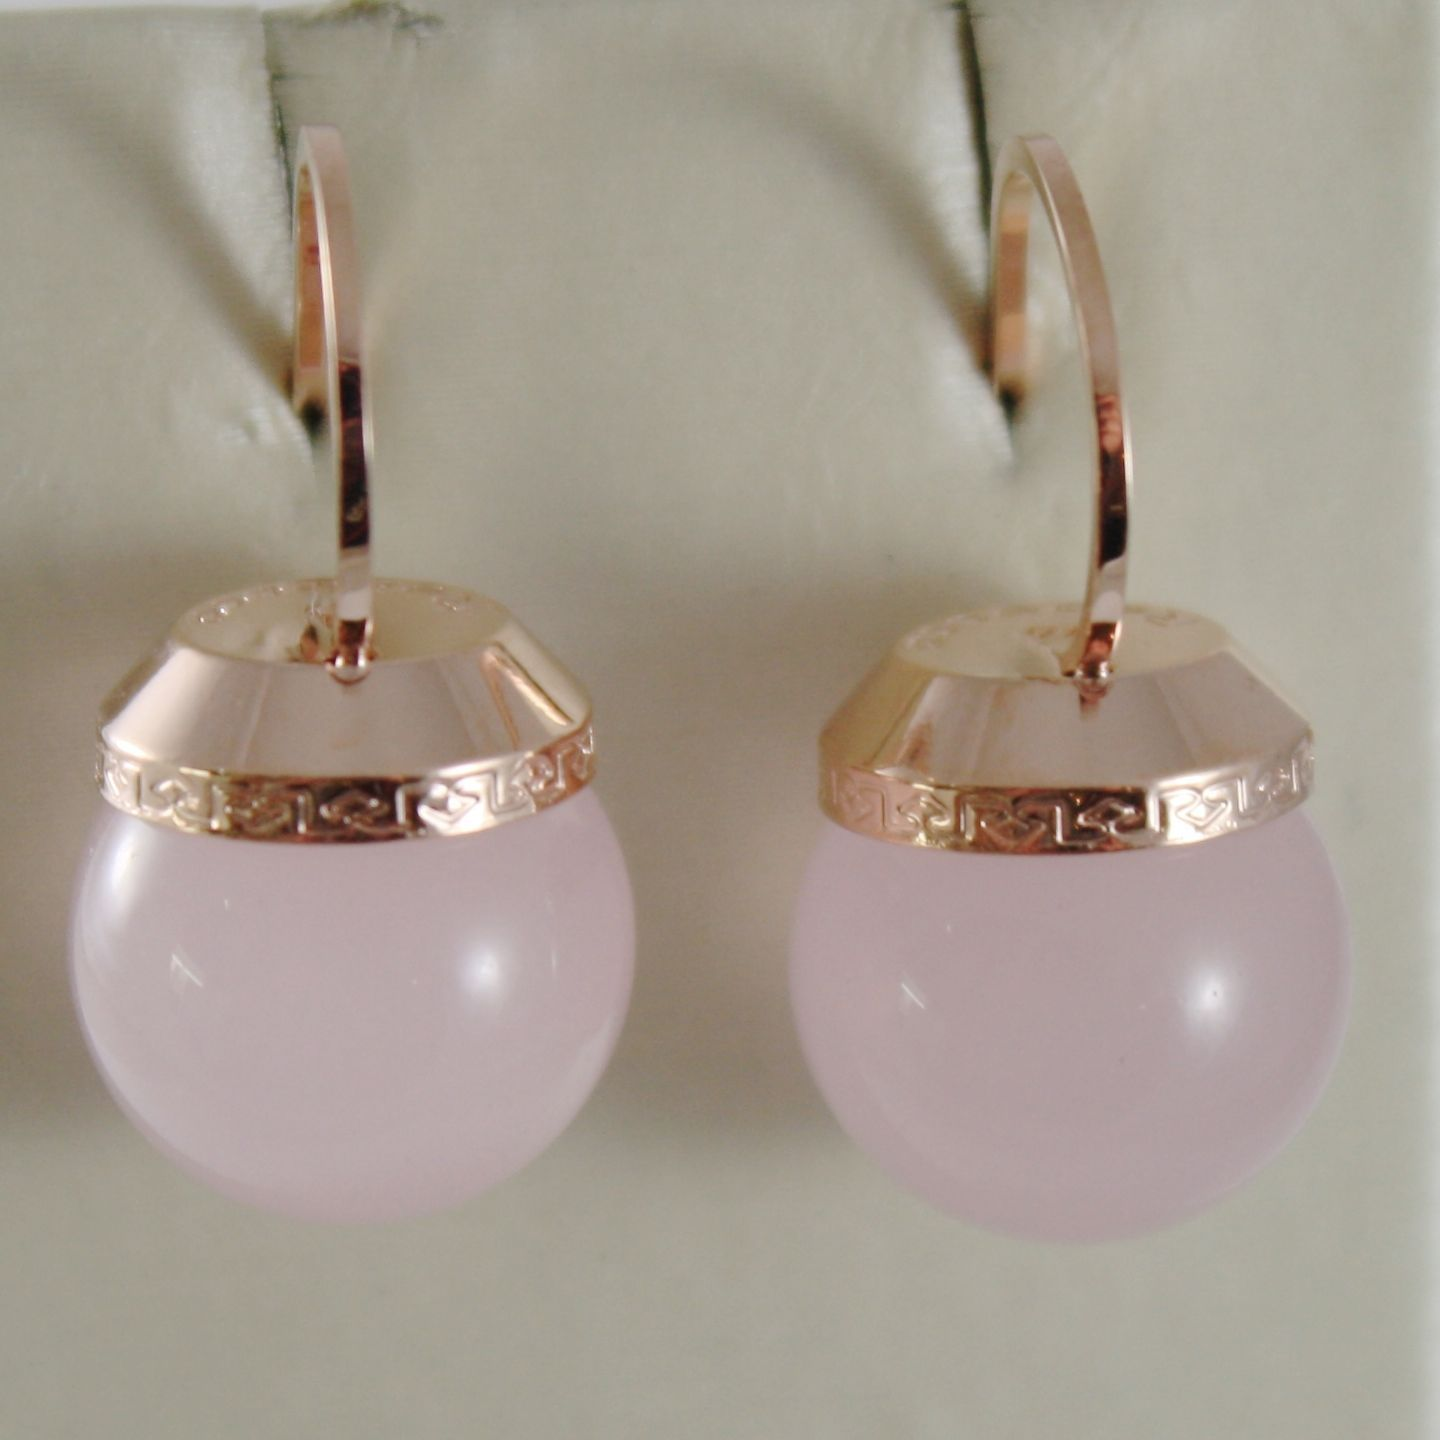 ROSE GOLD PLATED BRONZE REBECCA PINK CRYSTALS EARRINGS BHSORQ03 MADE IN ITALY